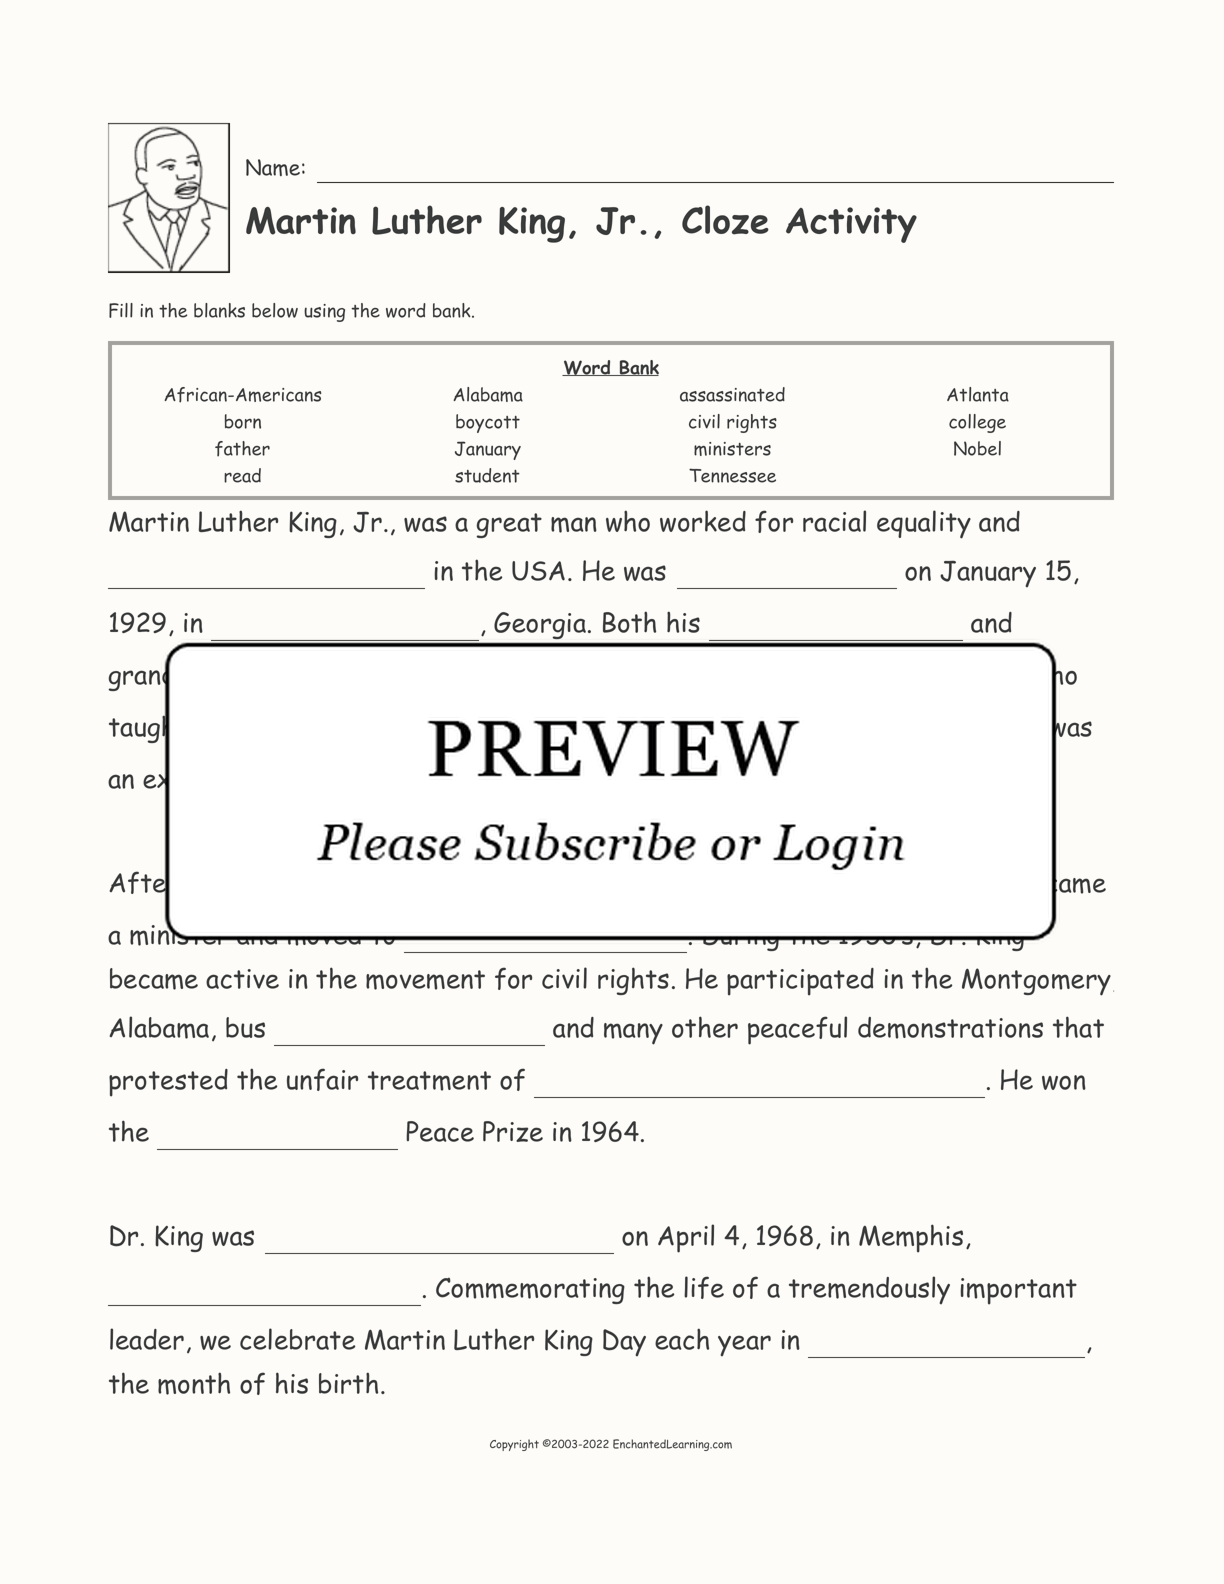 Martin Luther King Jr Cloze Activity